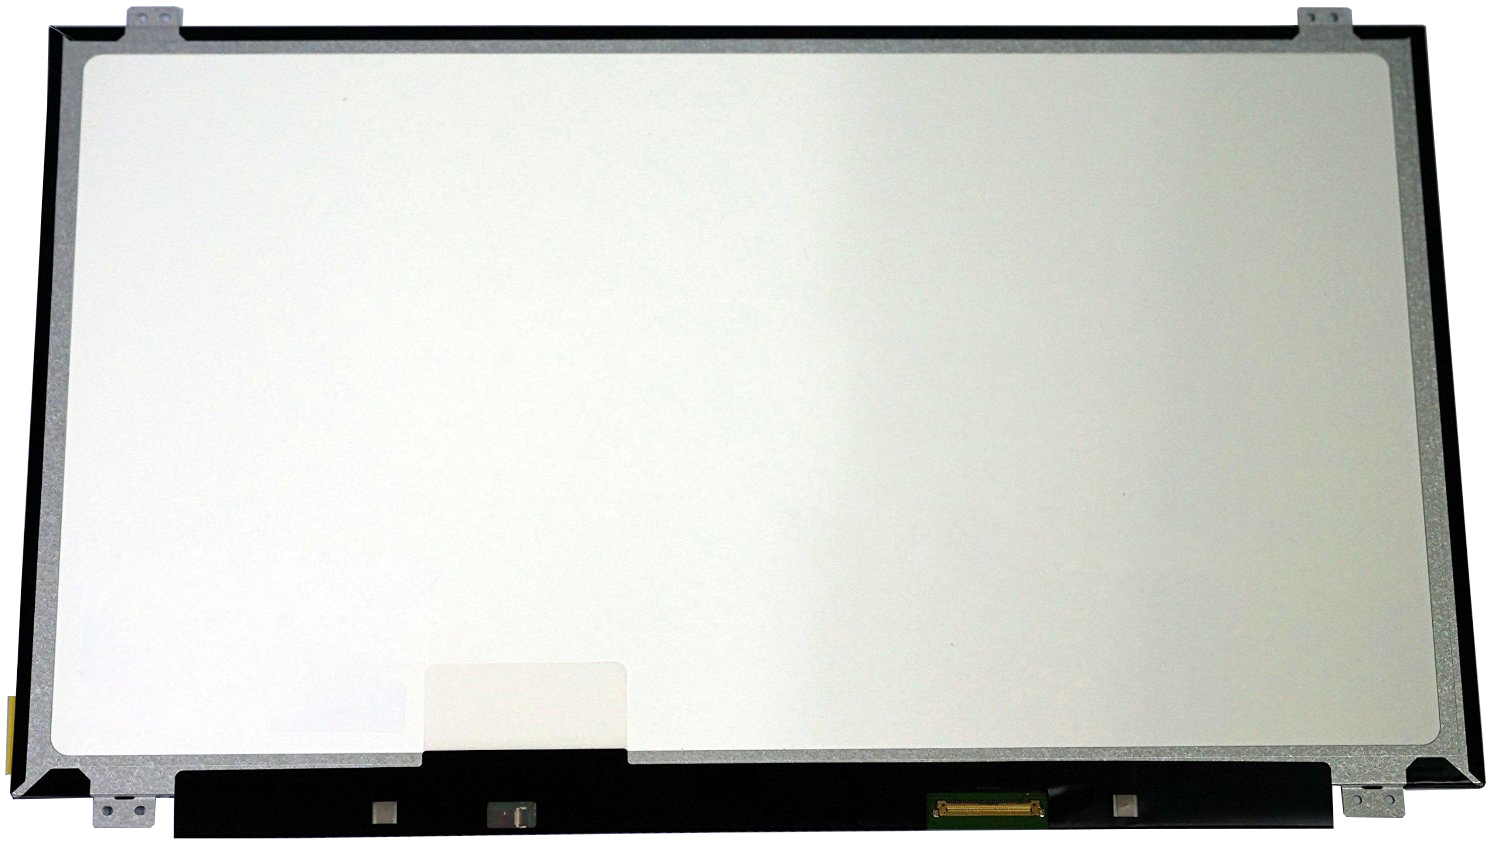 QuYing Laptop LCD Screen for Acer ASPIRE ONE CLOUDBOOK AO1-431 V5-472 V5-472P V7-482PG R3-471T R3-471TG R3-431T(14 1366x768 30p) original new al12b32 laptop battery for acer aspire one 725 756 v5 171 b113 b113m al12x32 al12a31 al12b31 al12b32 2500mah